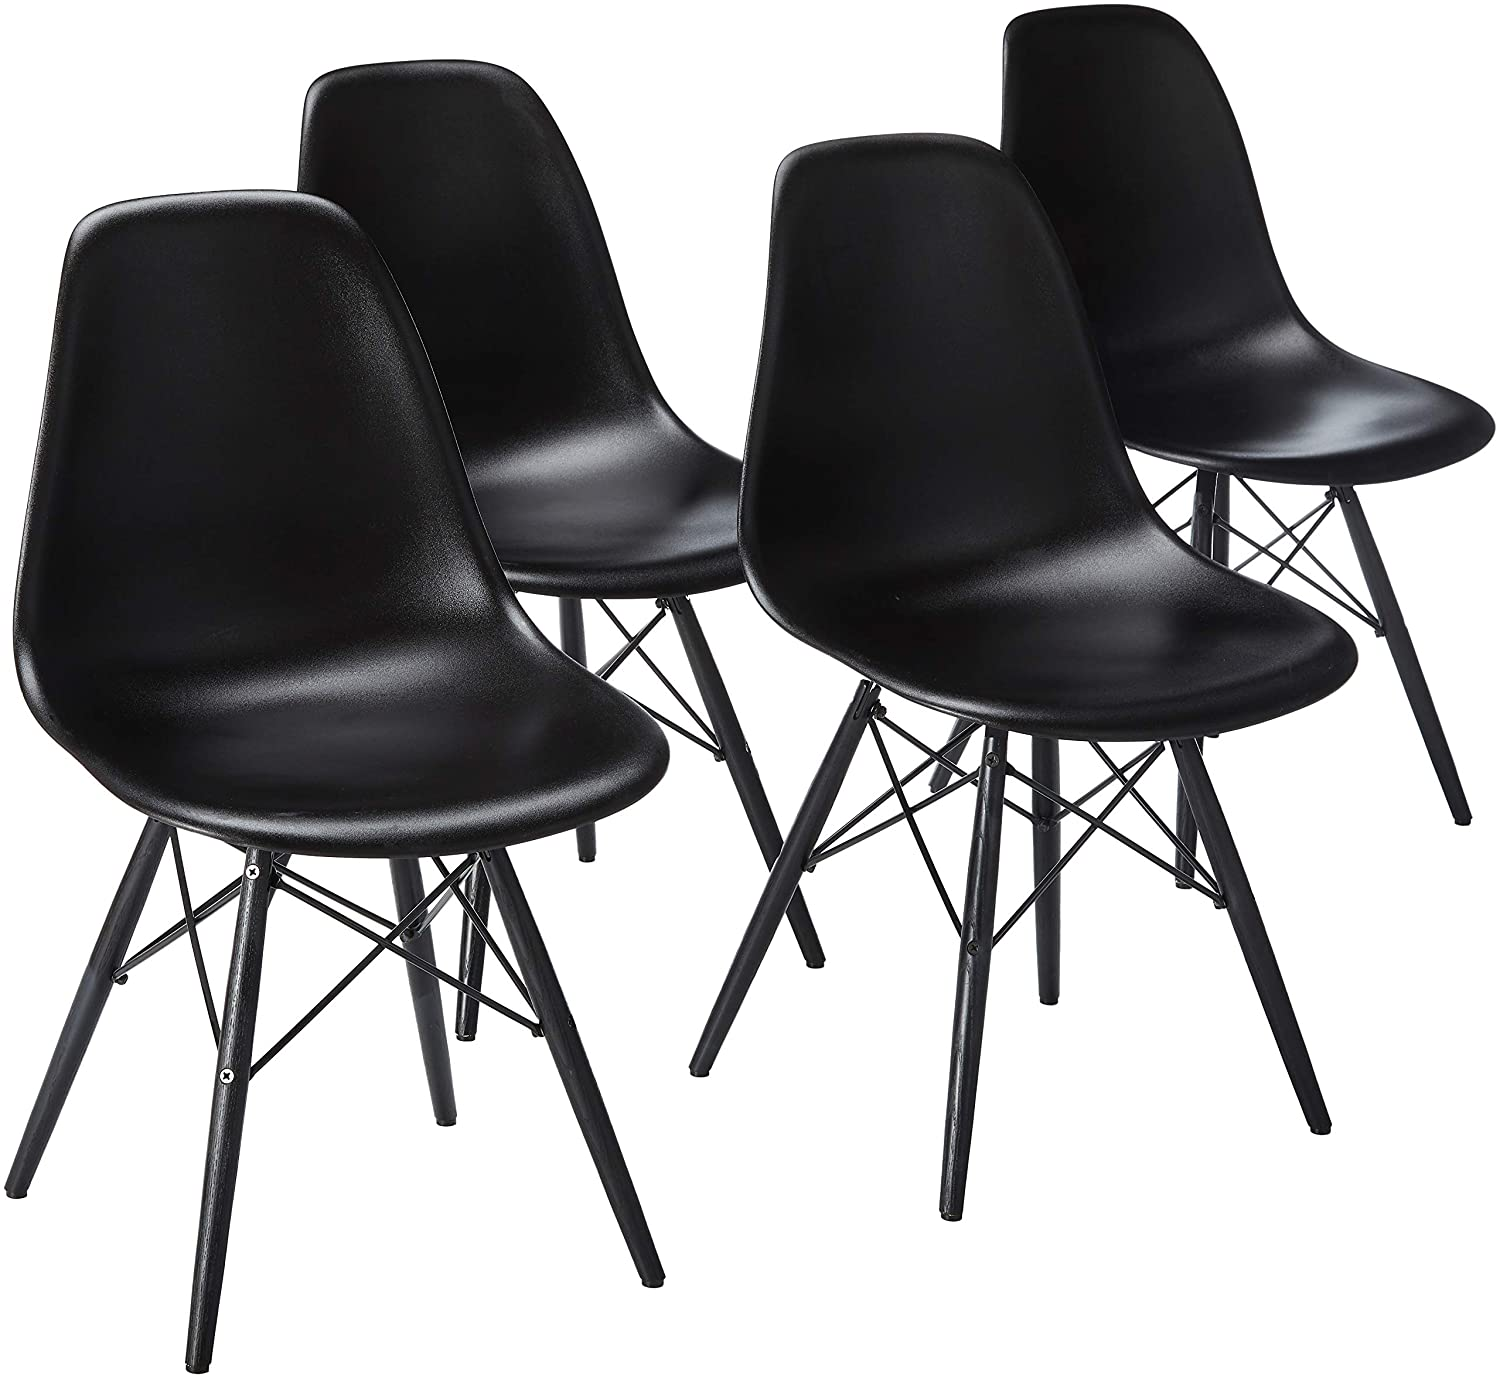 2xhome Set of 4 Mid Century Modern Industrial Black Side Armless No Arms Dark Wood Legs Eiffel for Dining Room Chairs Molded Shell Plastic Dowel Metal Desk